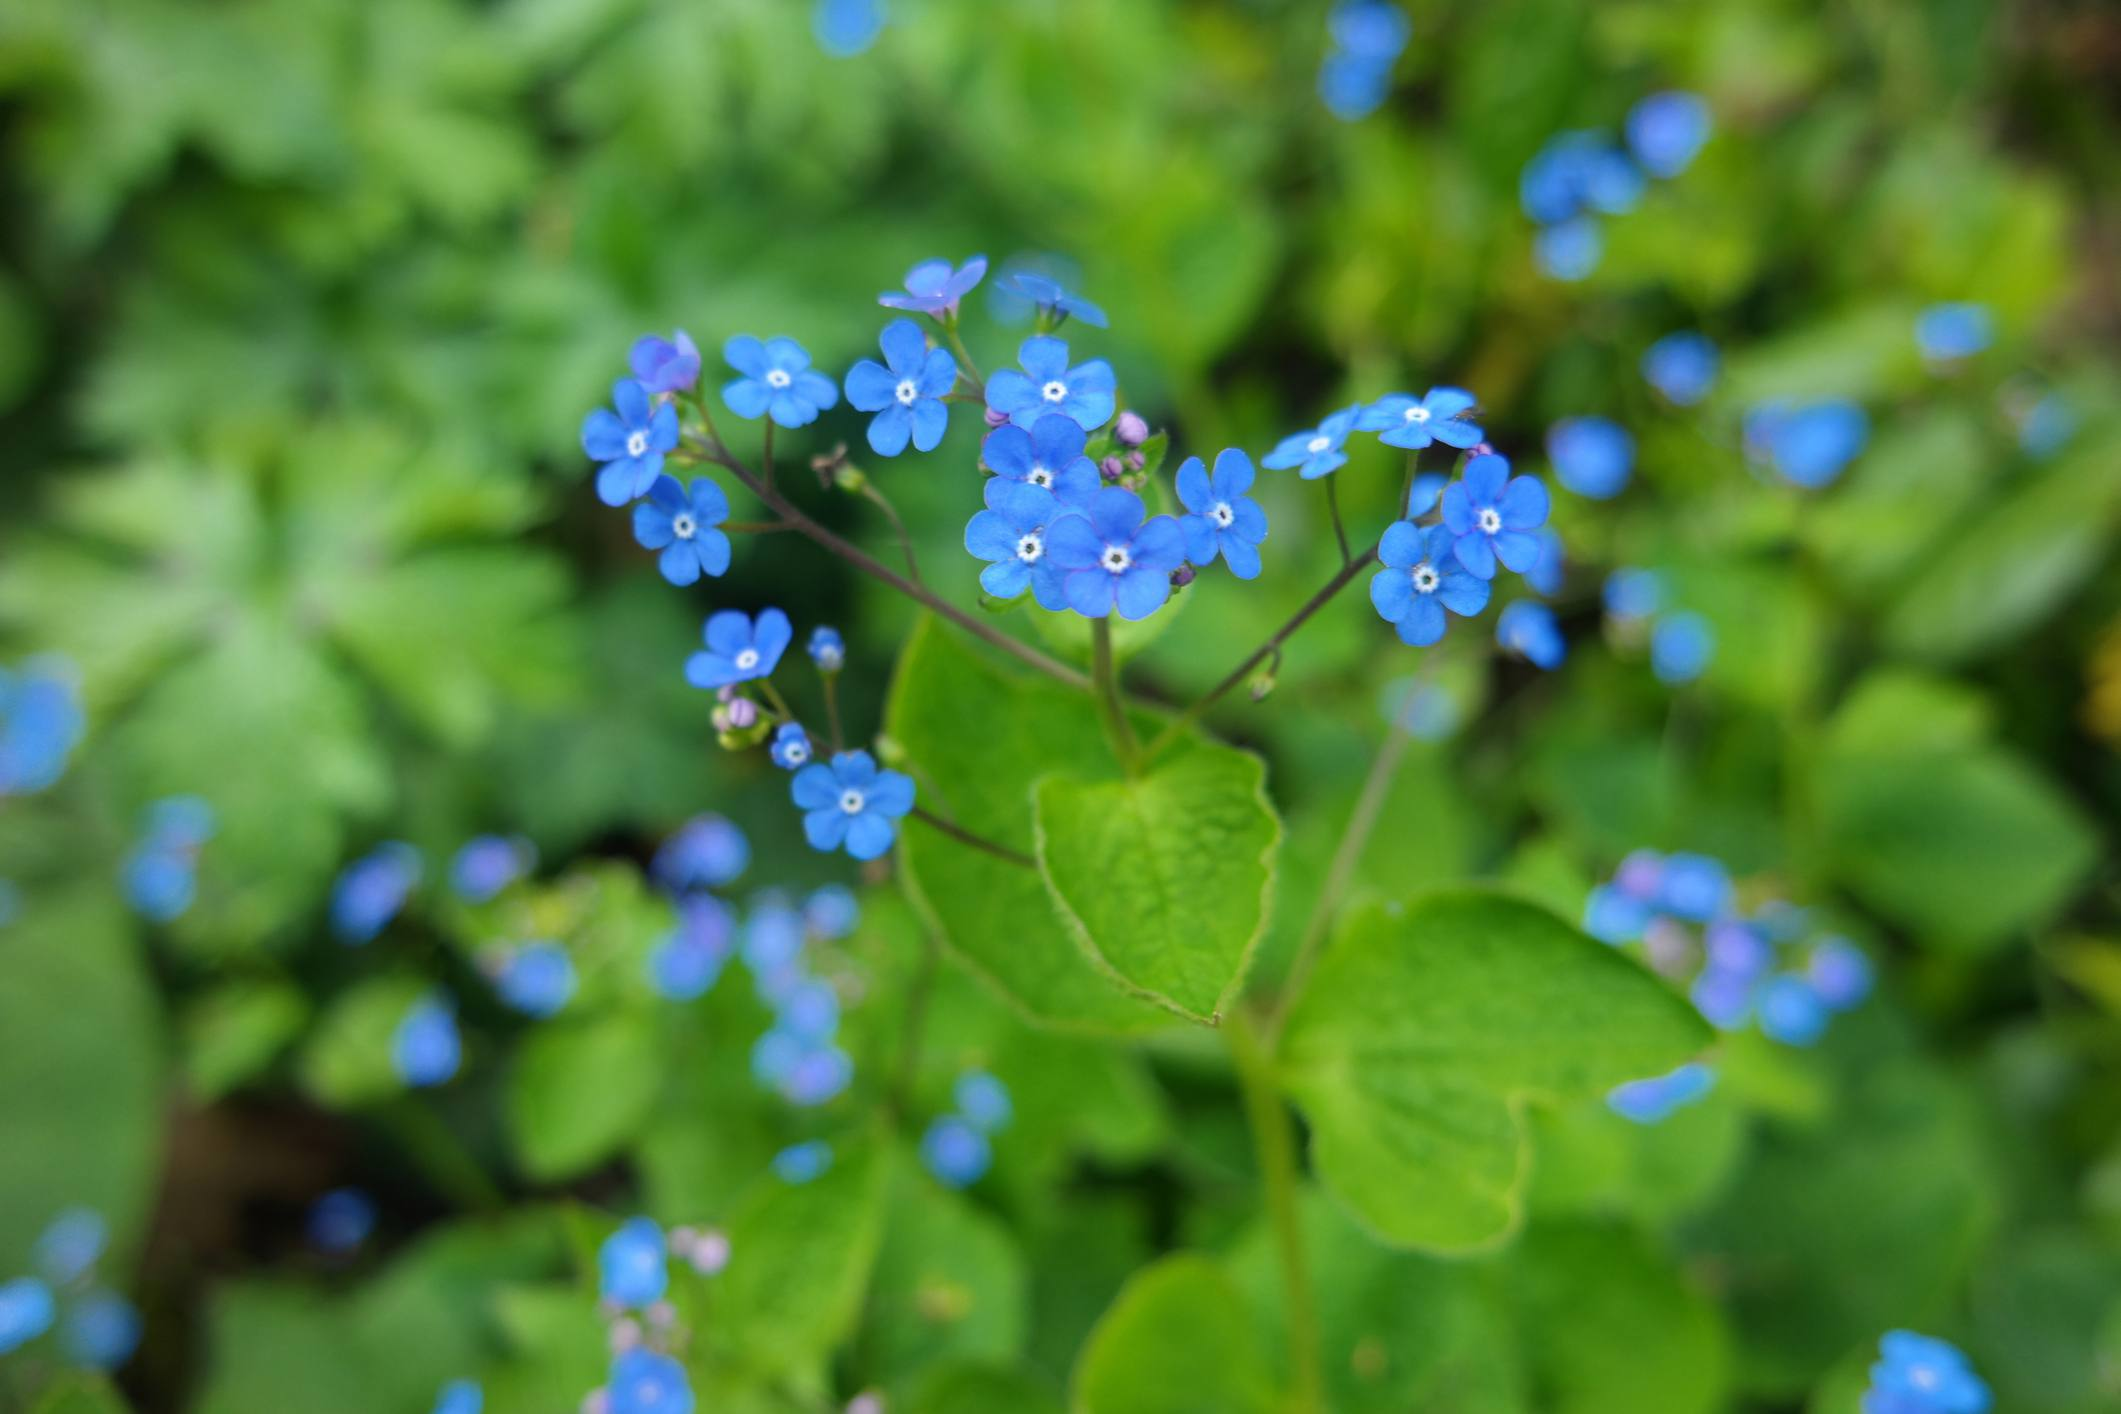 Blue forget-me-not flowers blooming.